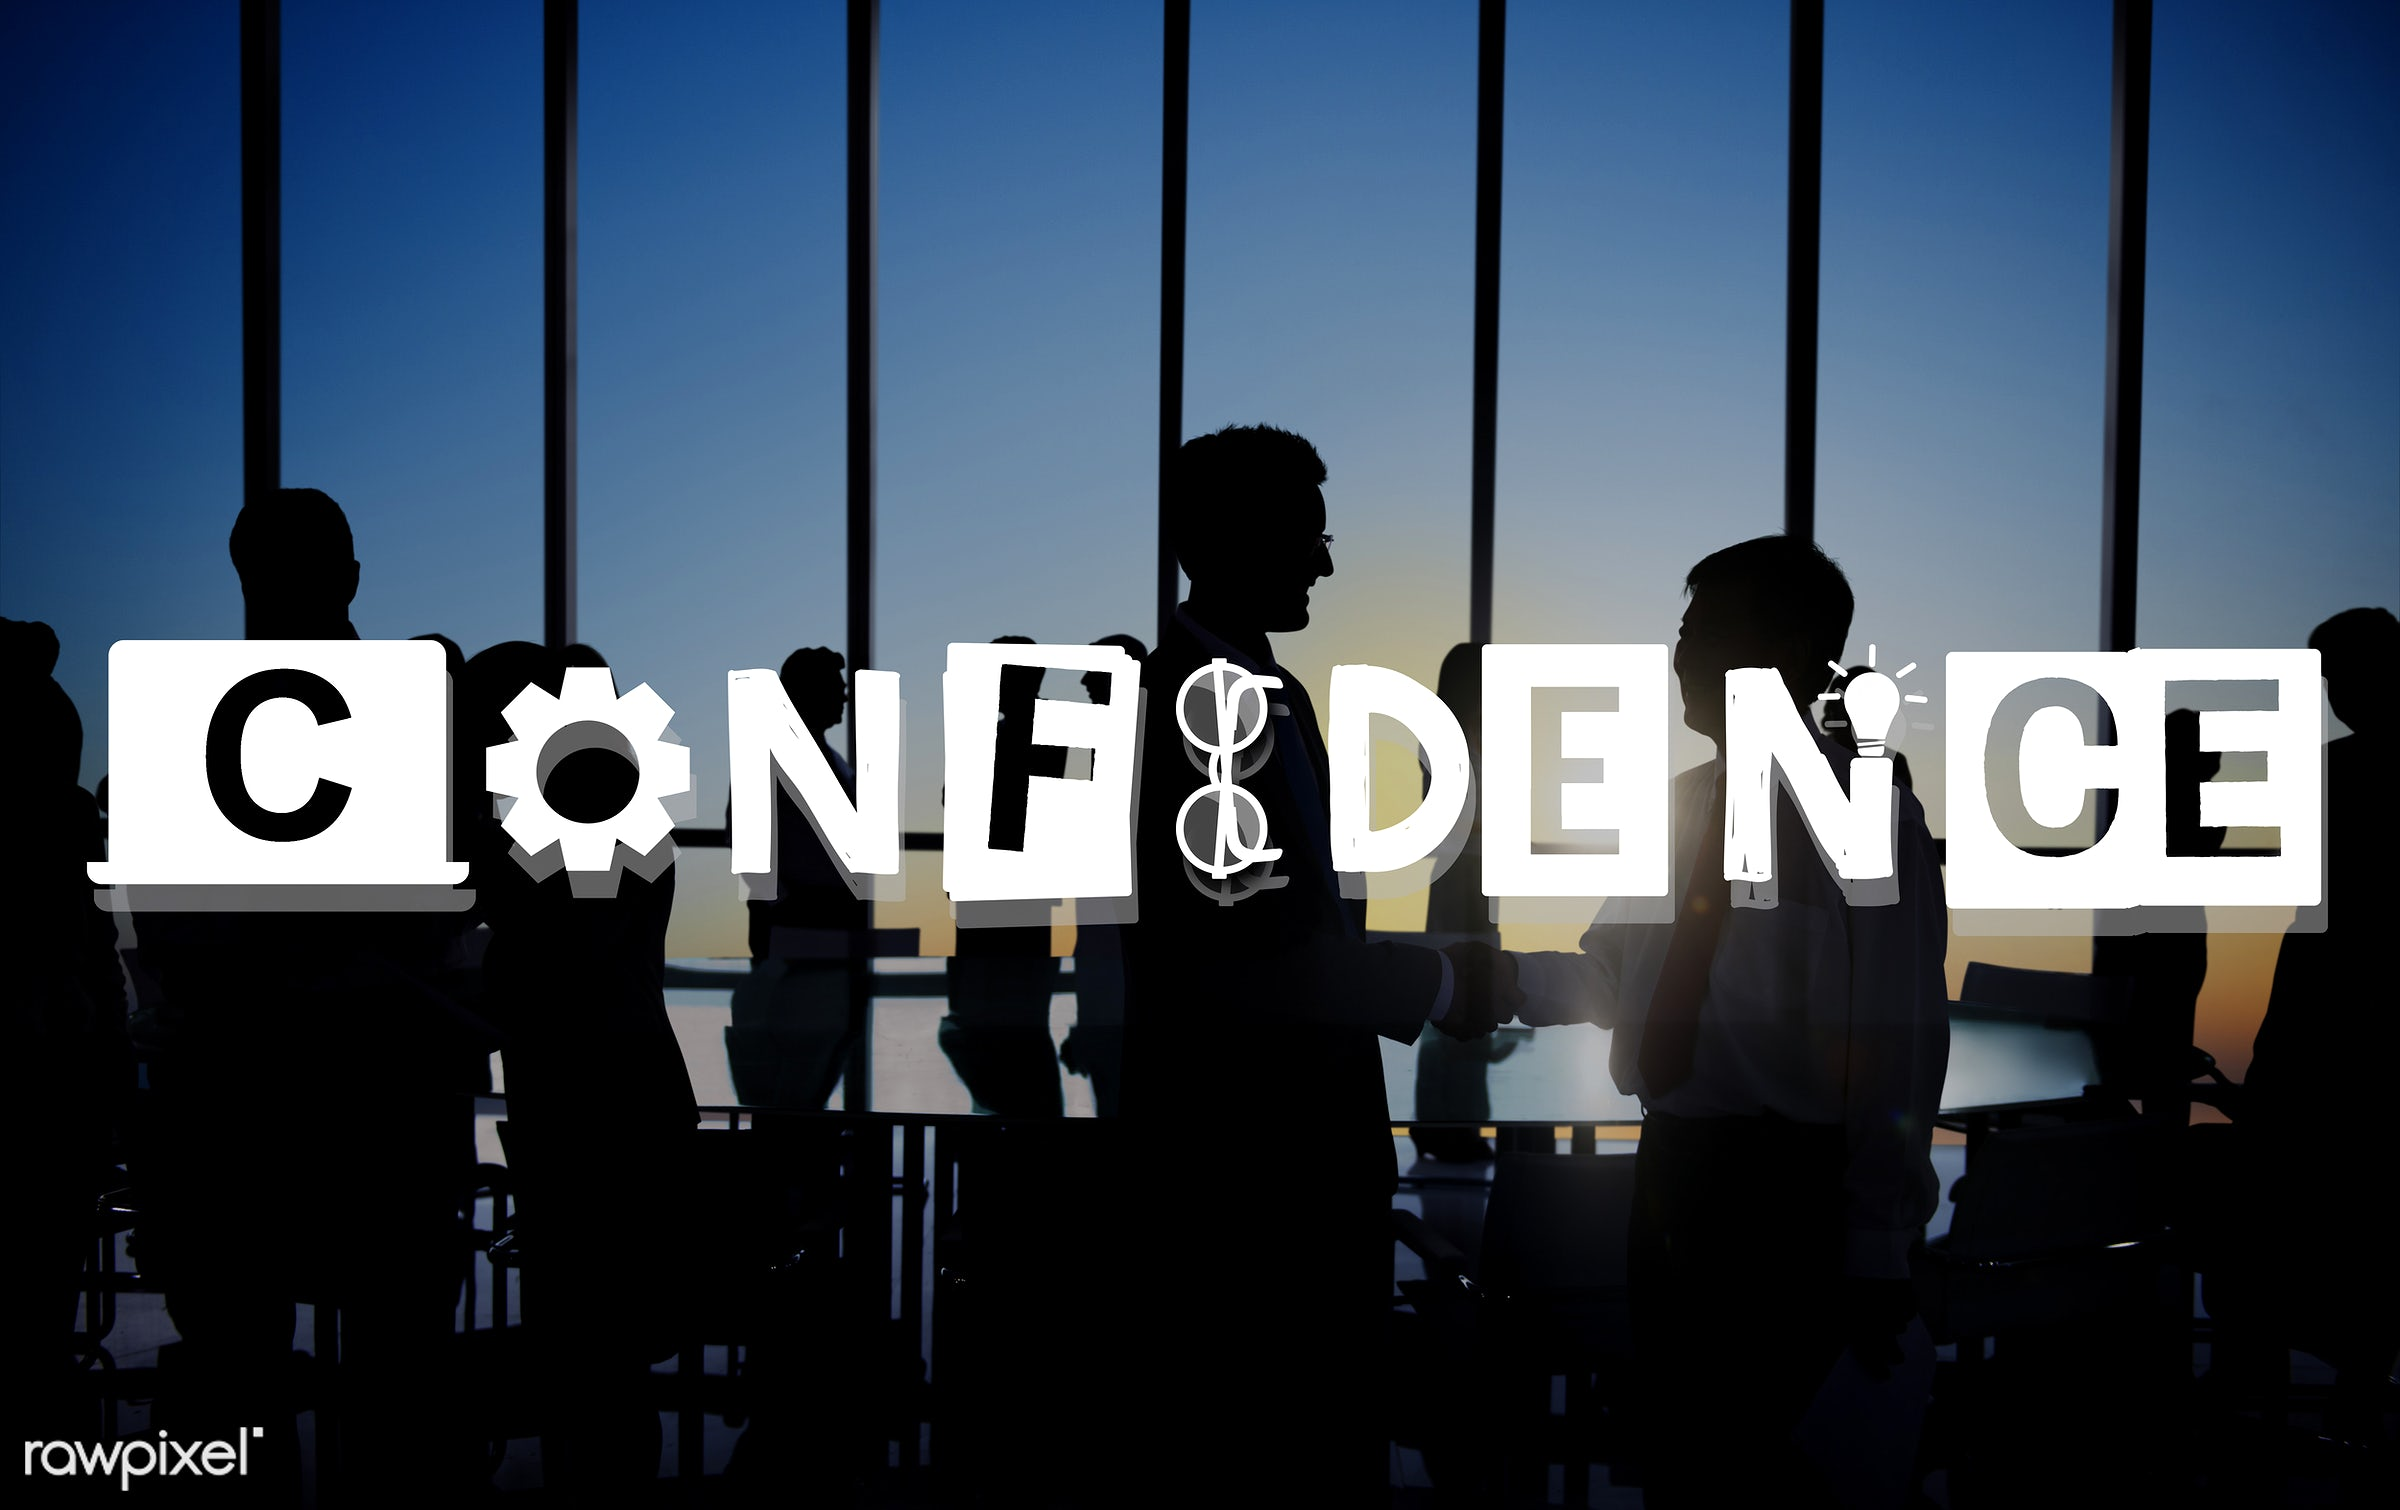 confidence, quality, window, ability, back lit, belief, business people, businessmen, businesswomen, cog, colleague,...